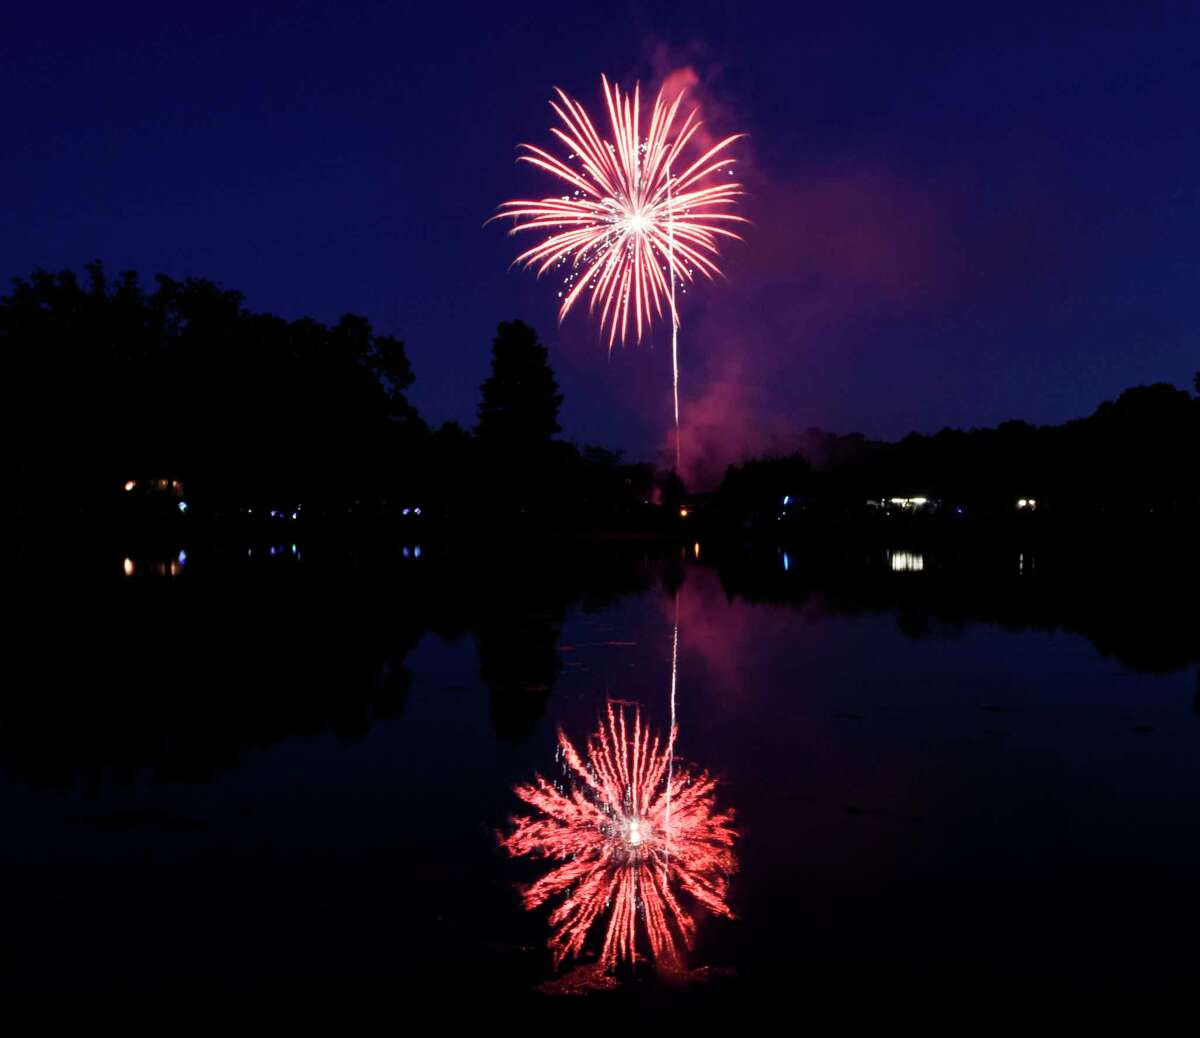 A colorful array of fireworks are displayed at Binney Park in Old Greenwich, Conn. Saturday, July 7, 2018. When the shows return this year to Greenwich Point on July 3 and July 5, the Parks and Recreation Foundation is selling catered picnic dinners as a fundraiser.